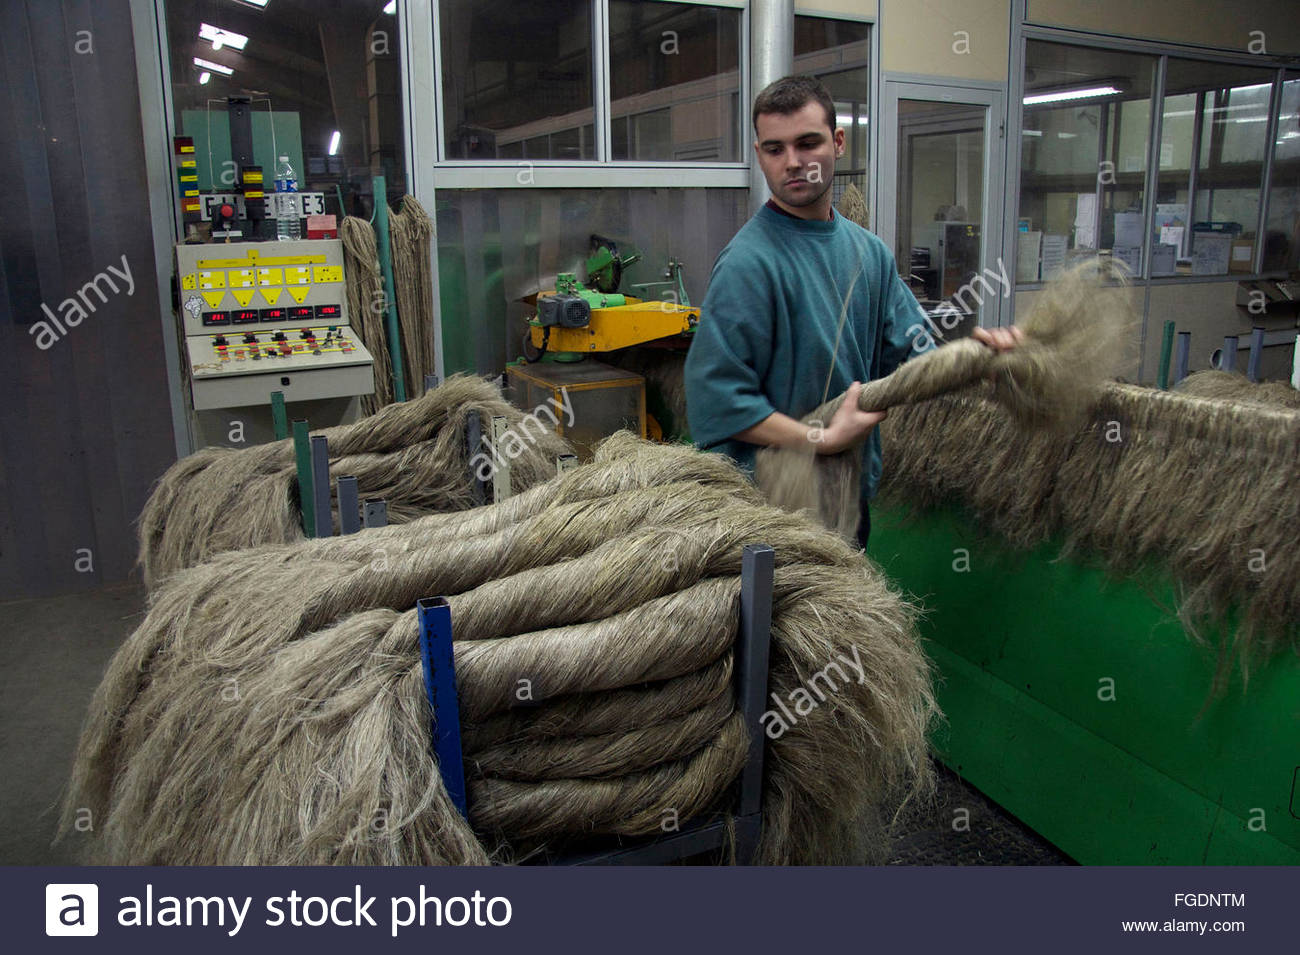 Nicolas Jourdaine is sorting the scutched flax fibers at the end of the scutching line, Terre de Lin, Saint Pierre - Stock Image